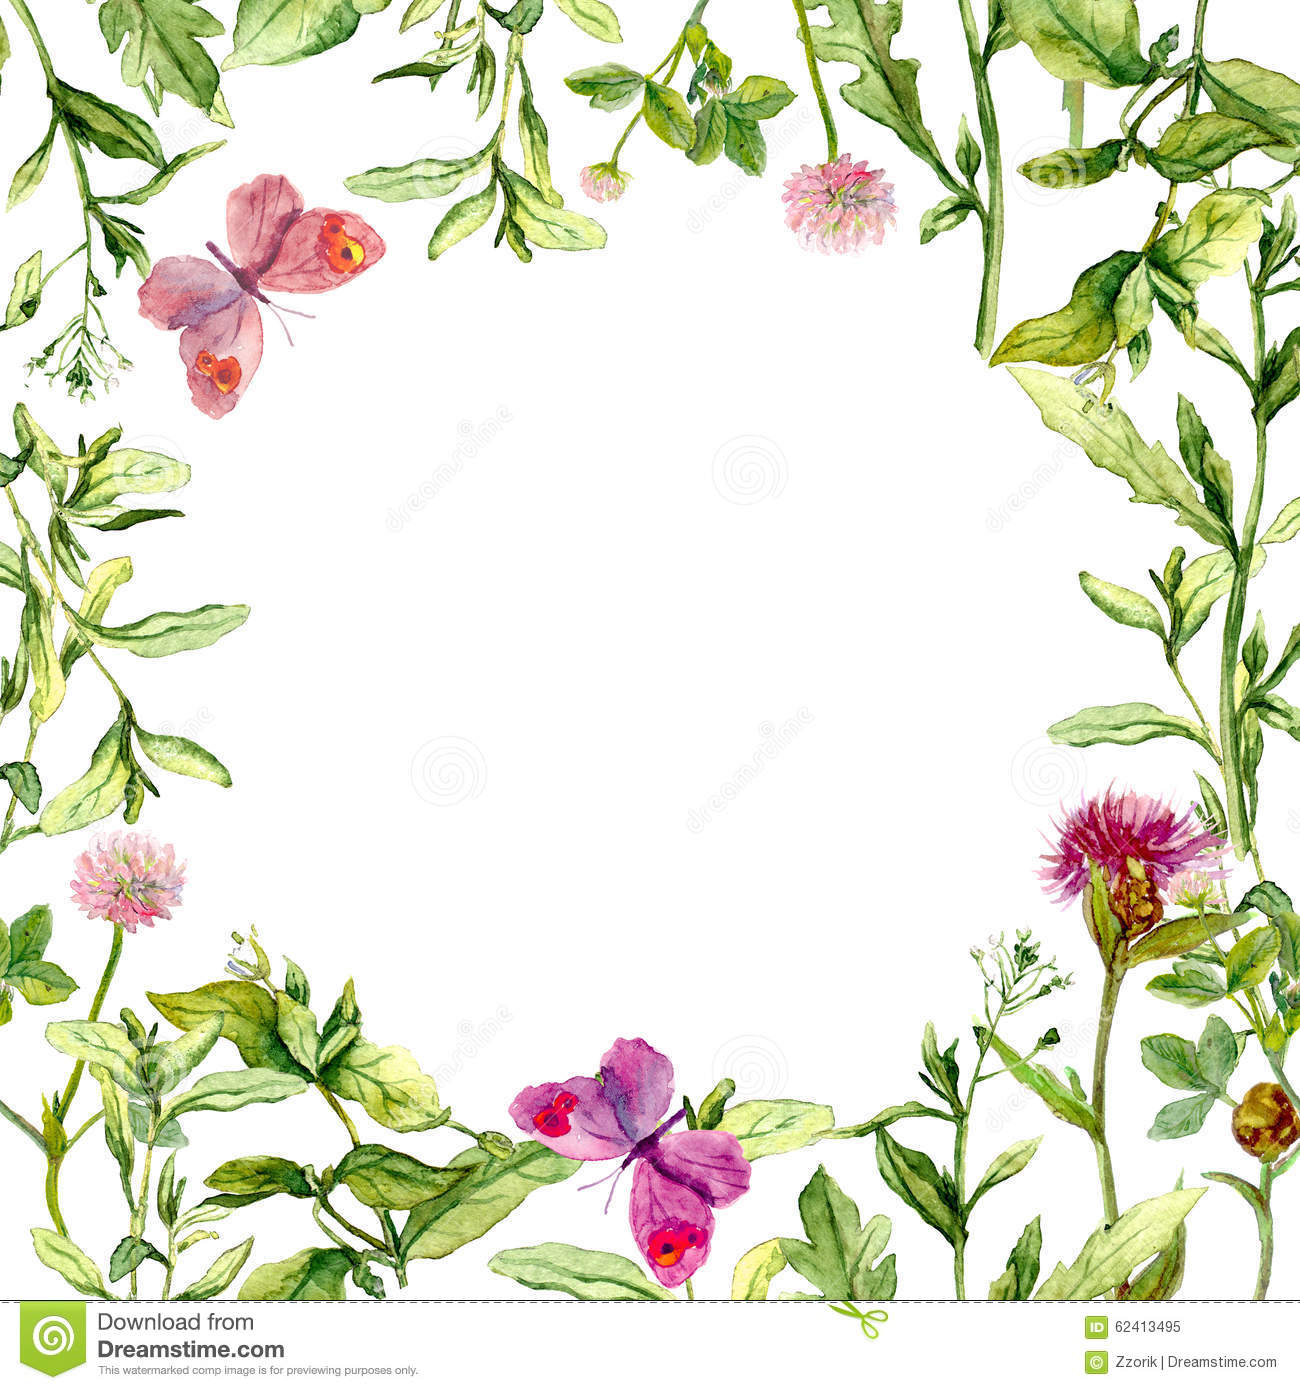 Border frame wit...Clipart Flowers And Butterflies Border